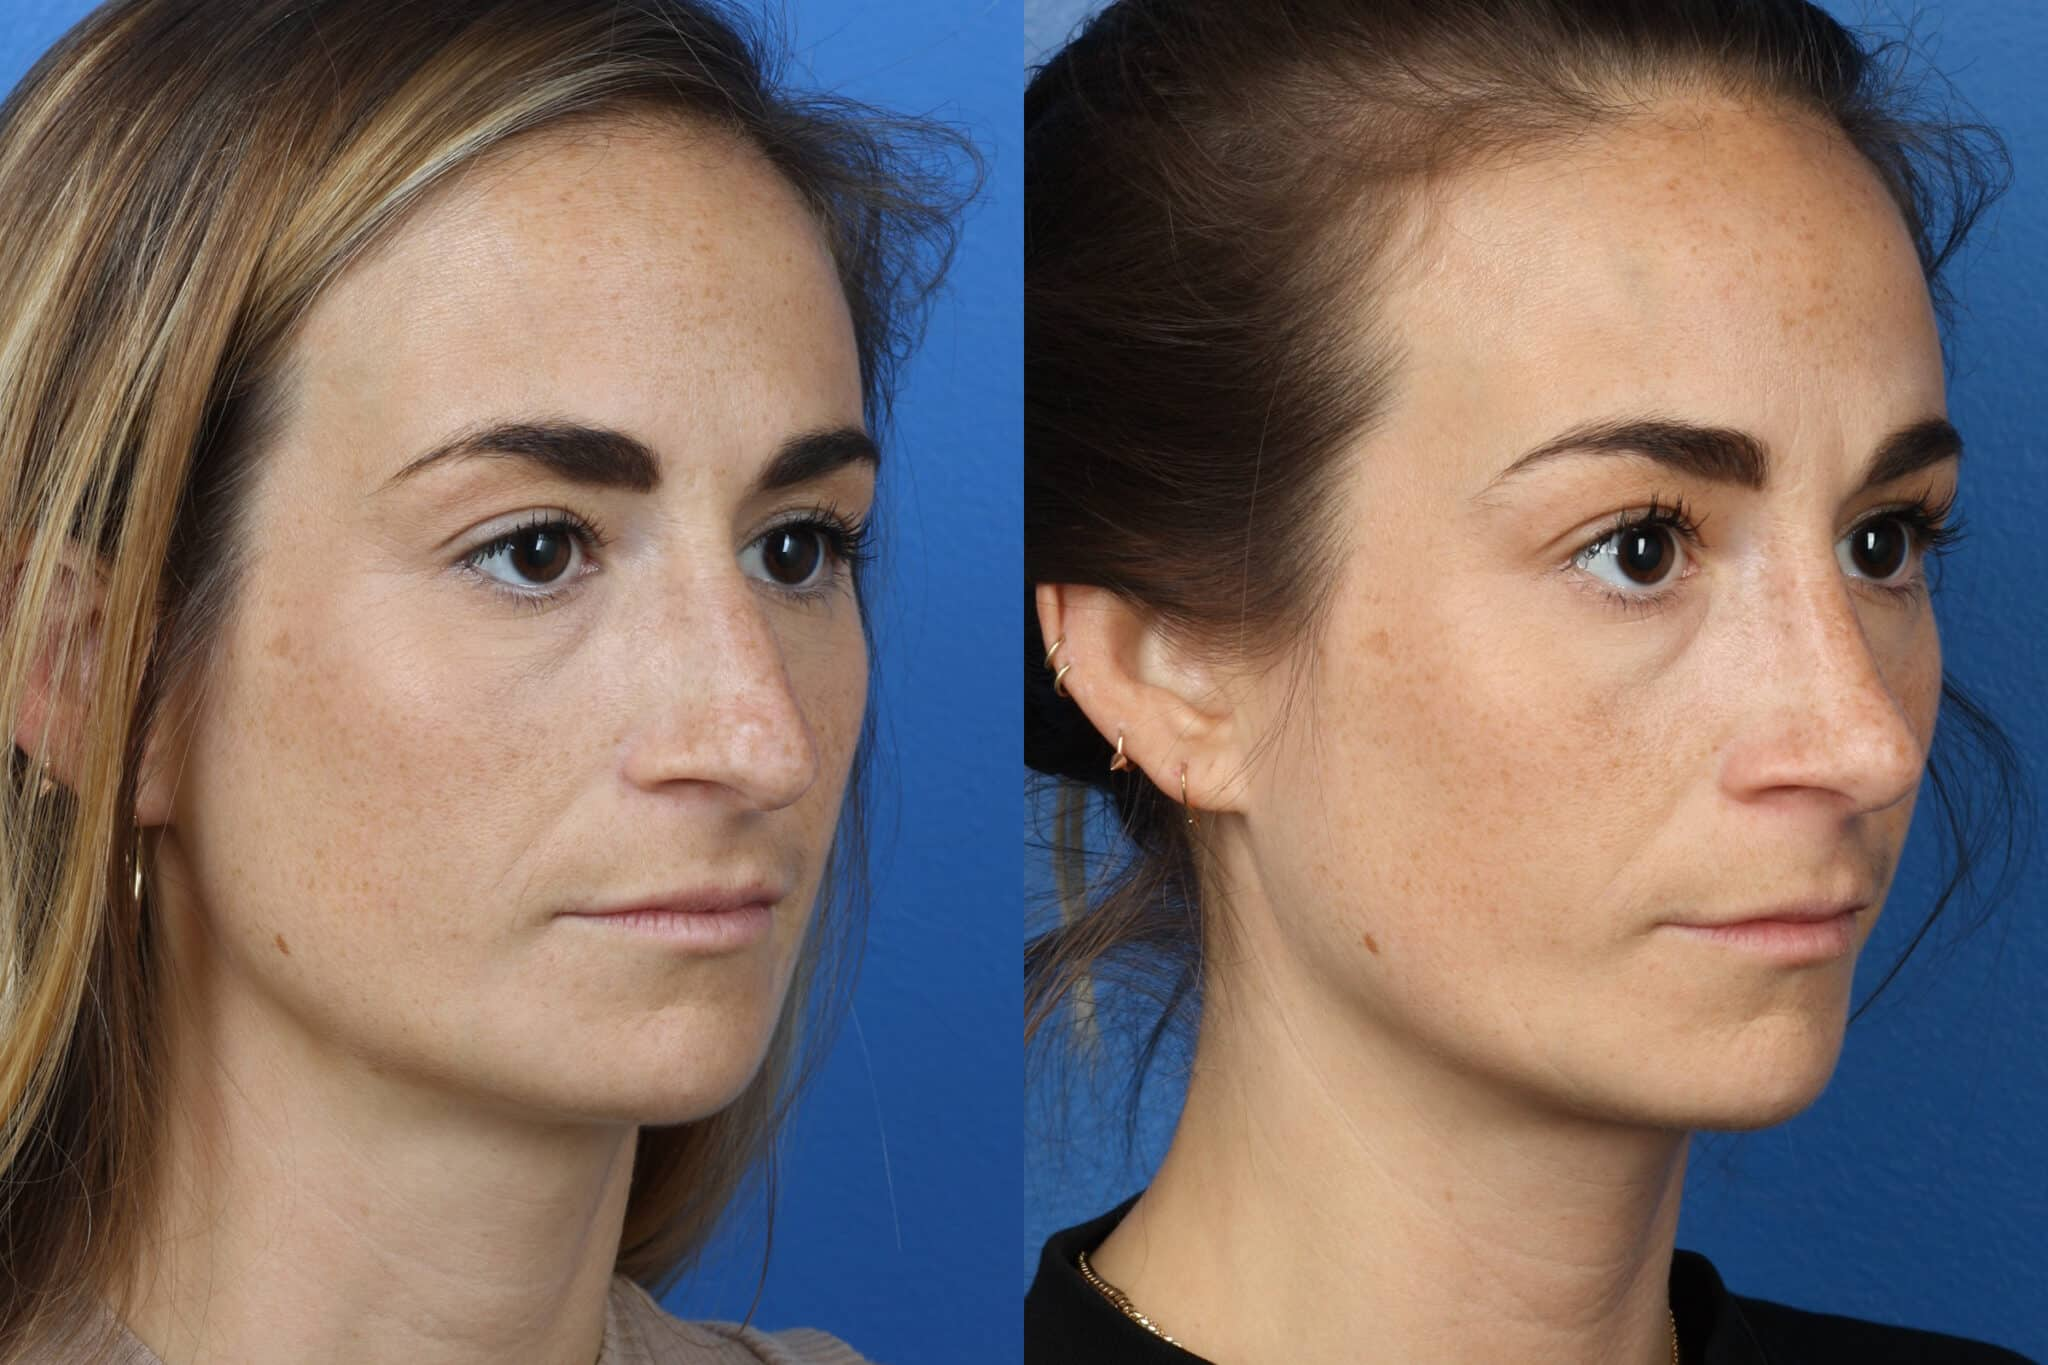 Rhinoplasty to remove hump from nasal bridge and refine the tip on a female patient by Dr. Miller